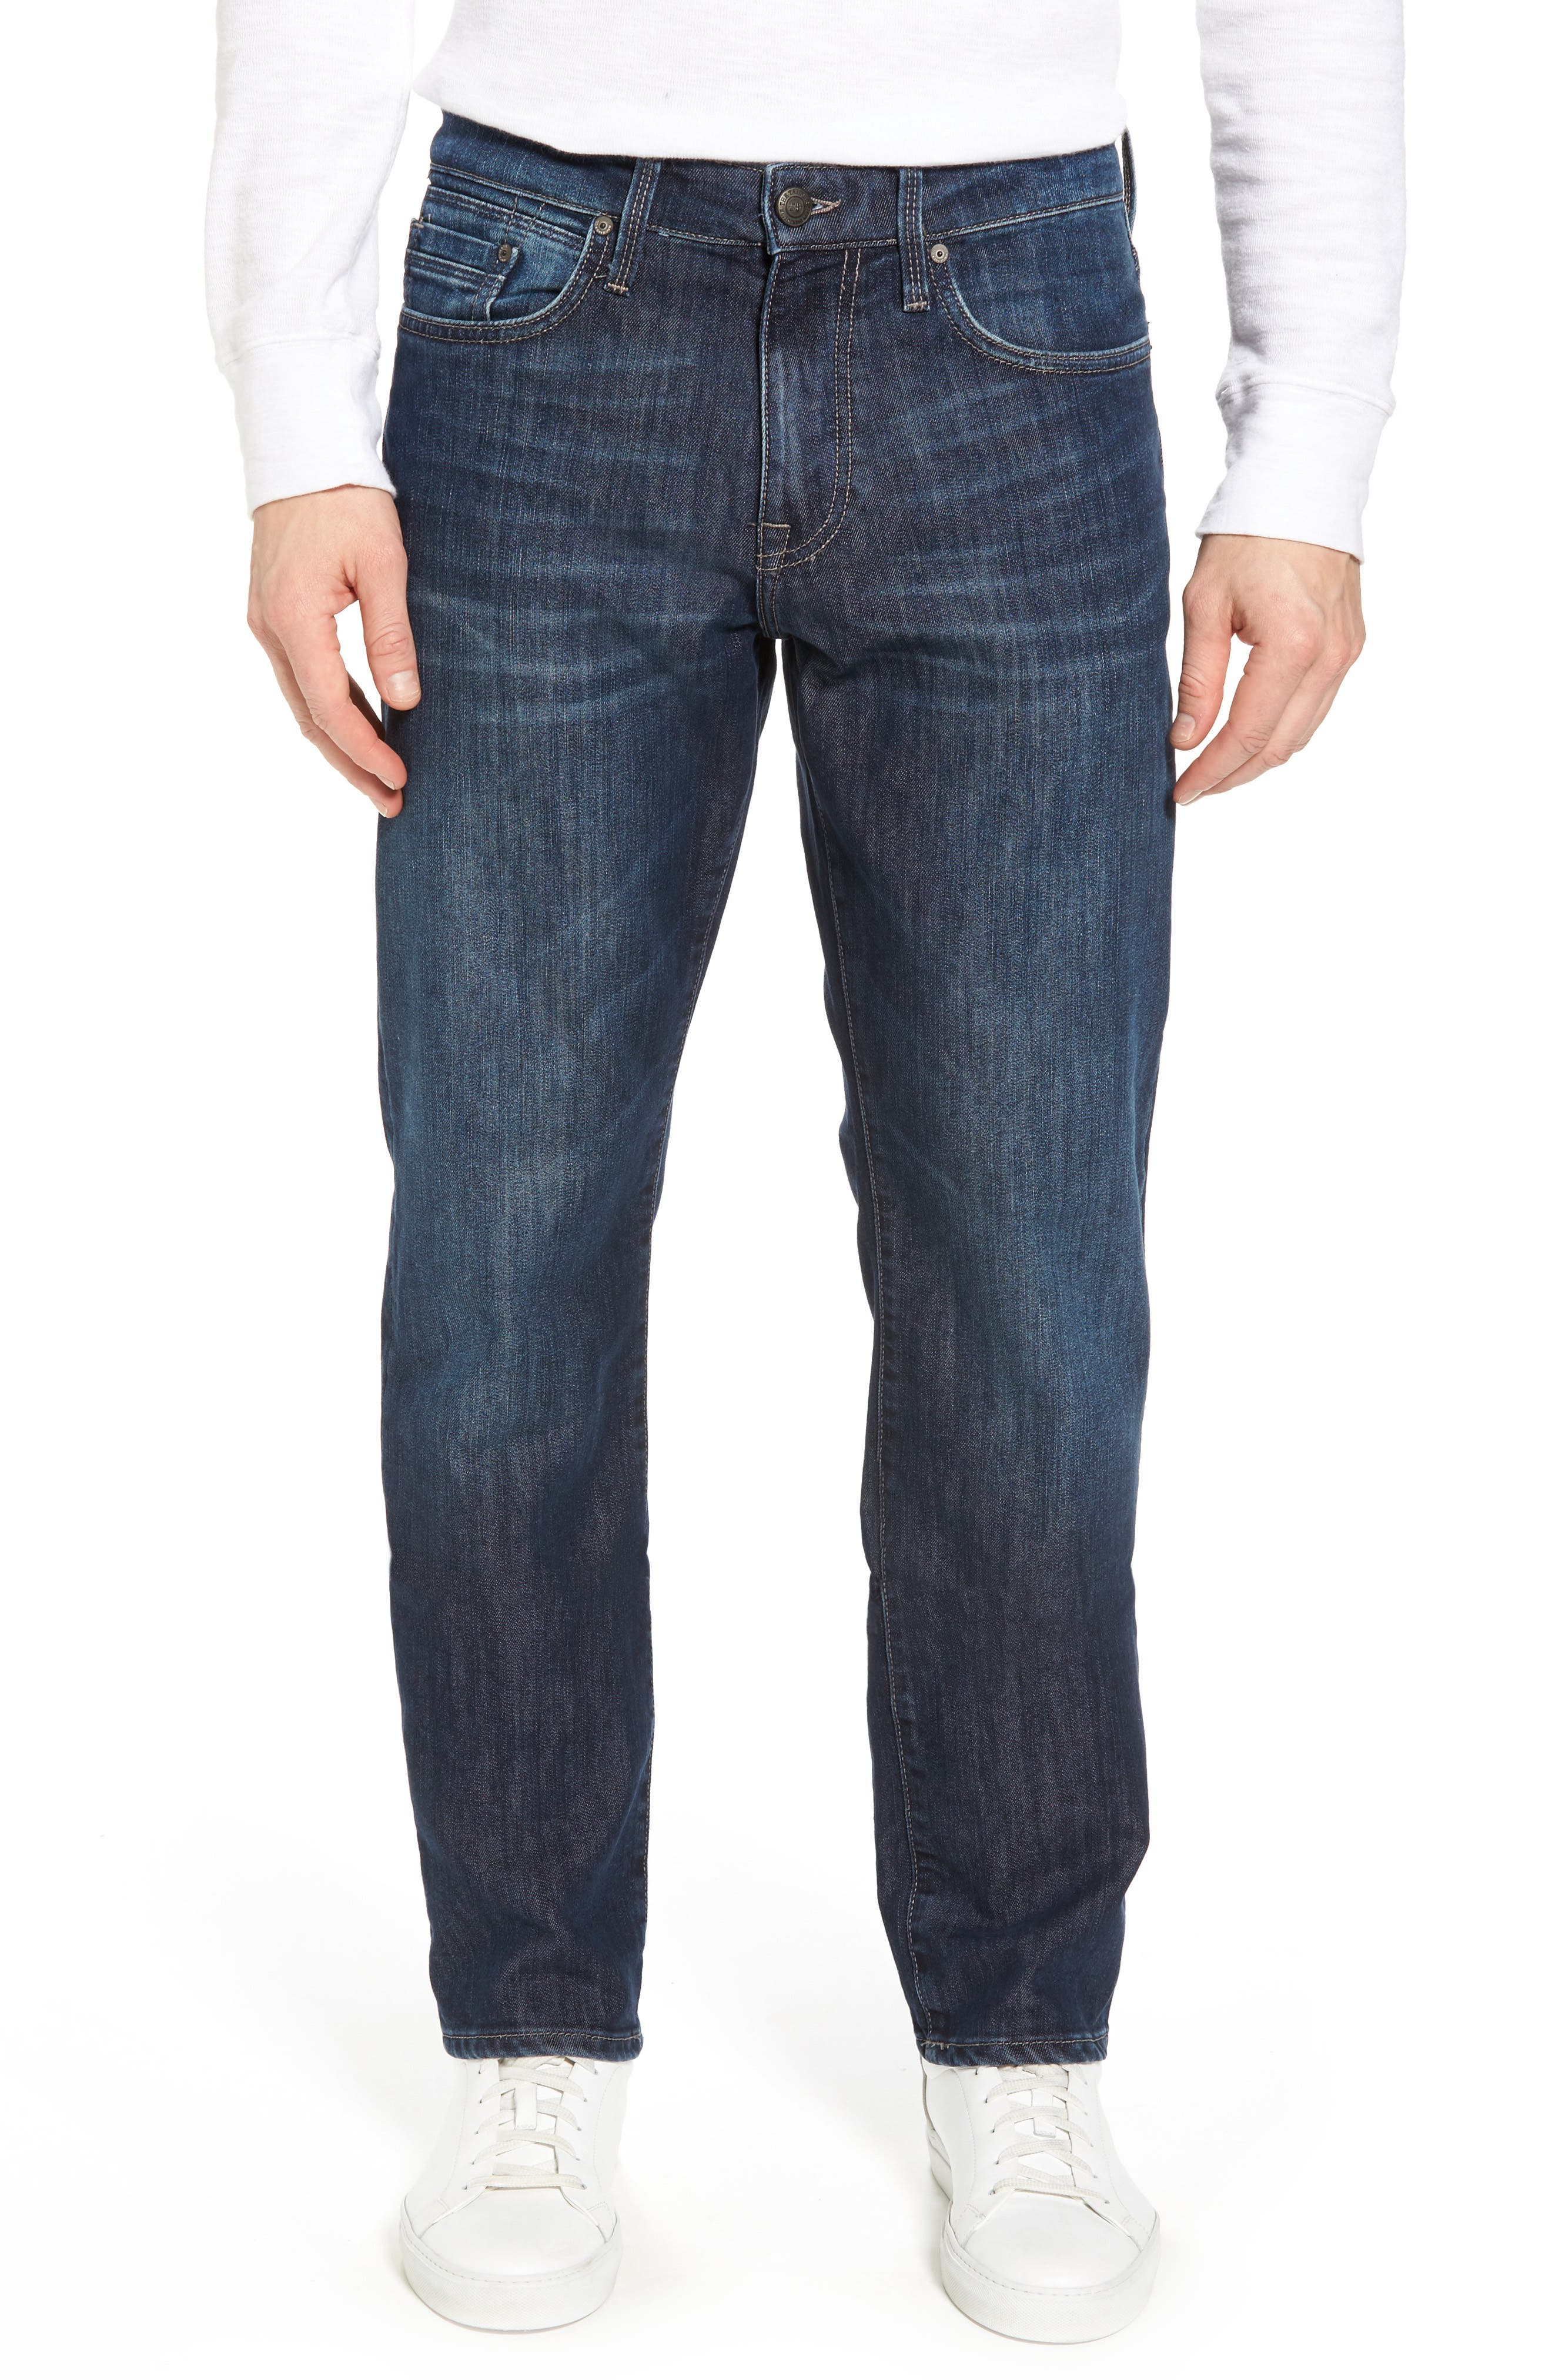 Myles Straight Leg Jeans,                             Main thumbnail 1, color,                             Deep Brushed Stanford